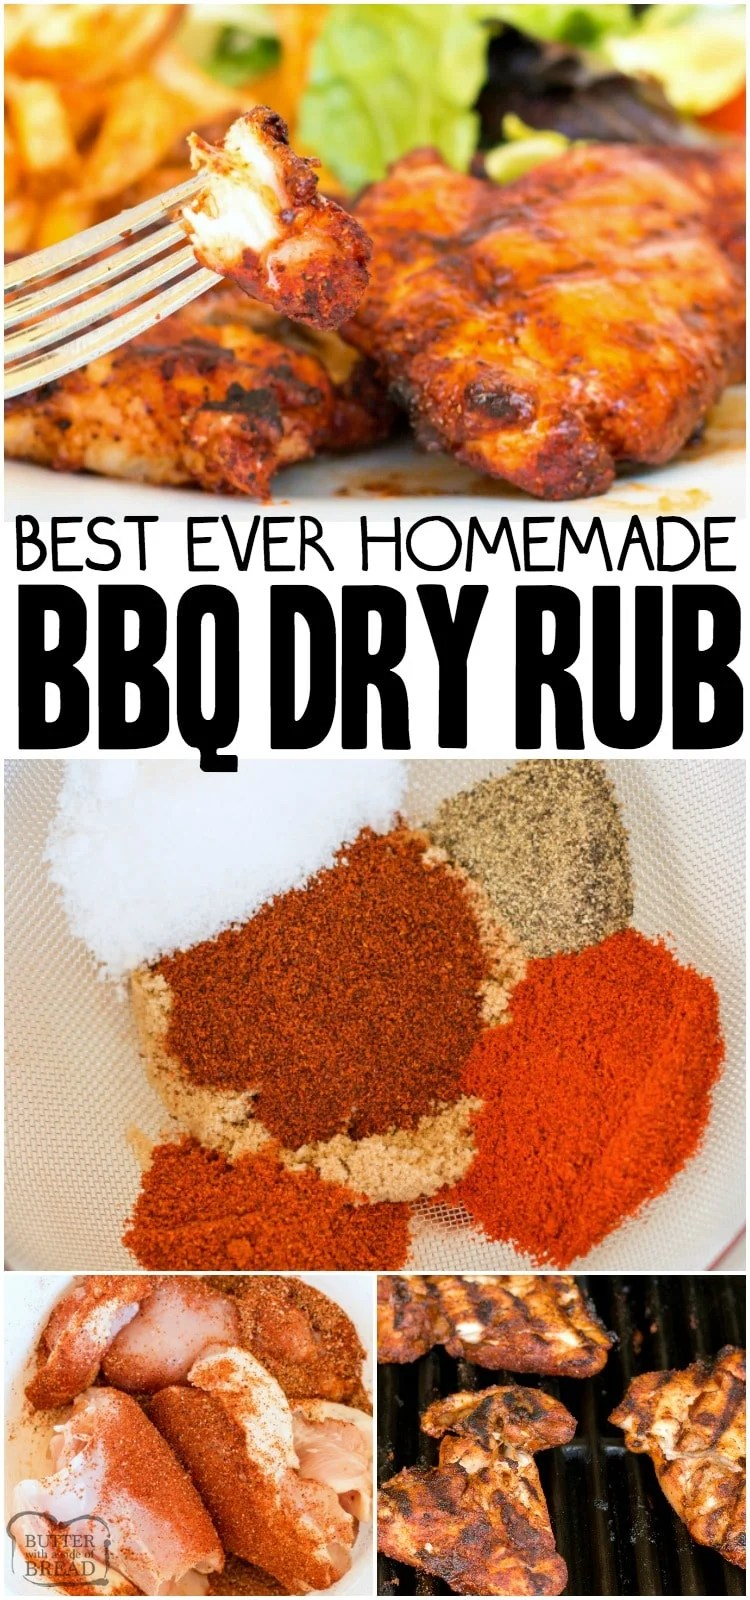 Best BBQ Dry Rub that can be used on chicken, beef, pork and fish.  BBQ rub recipe that is simple to make and adds a great flavor to grilled meats.